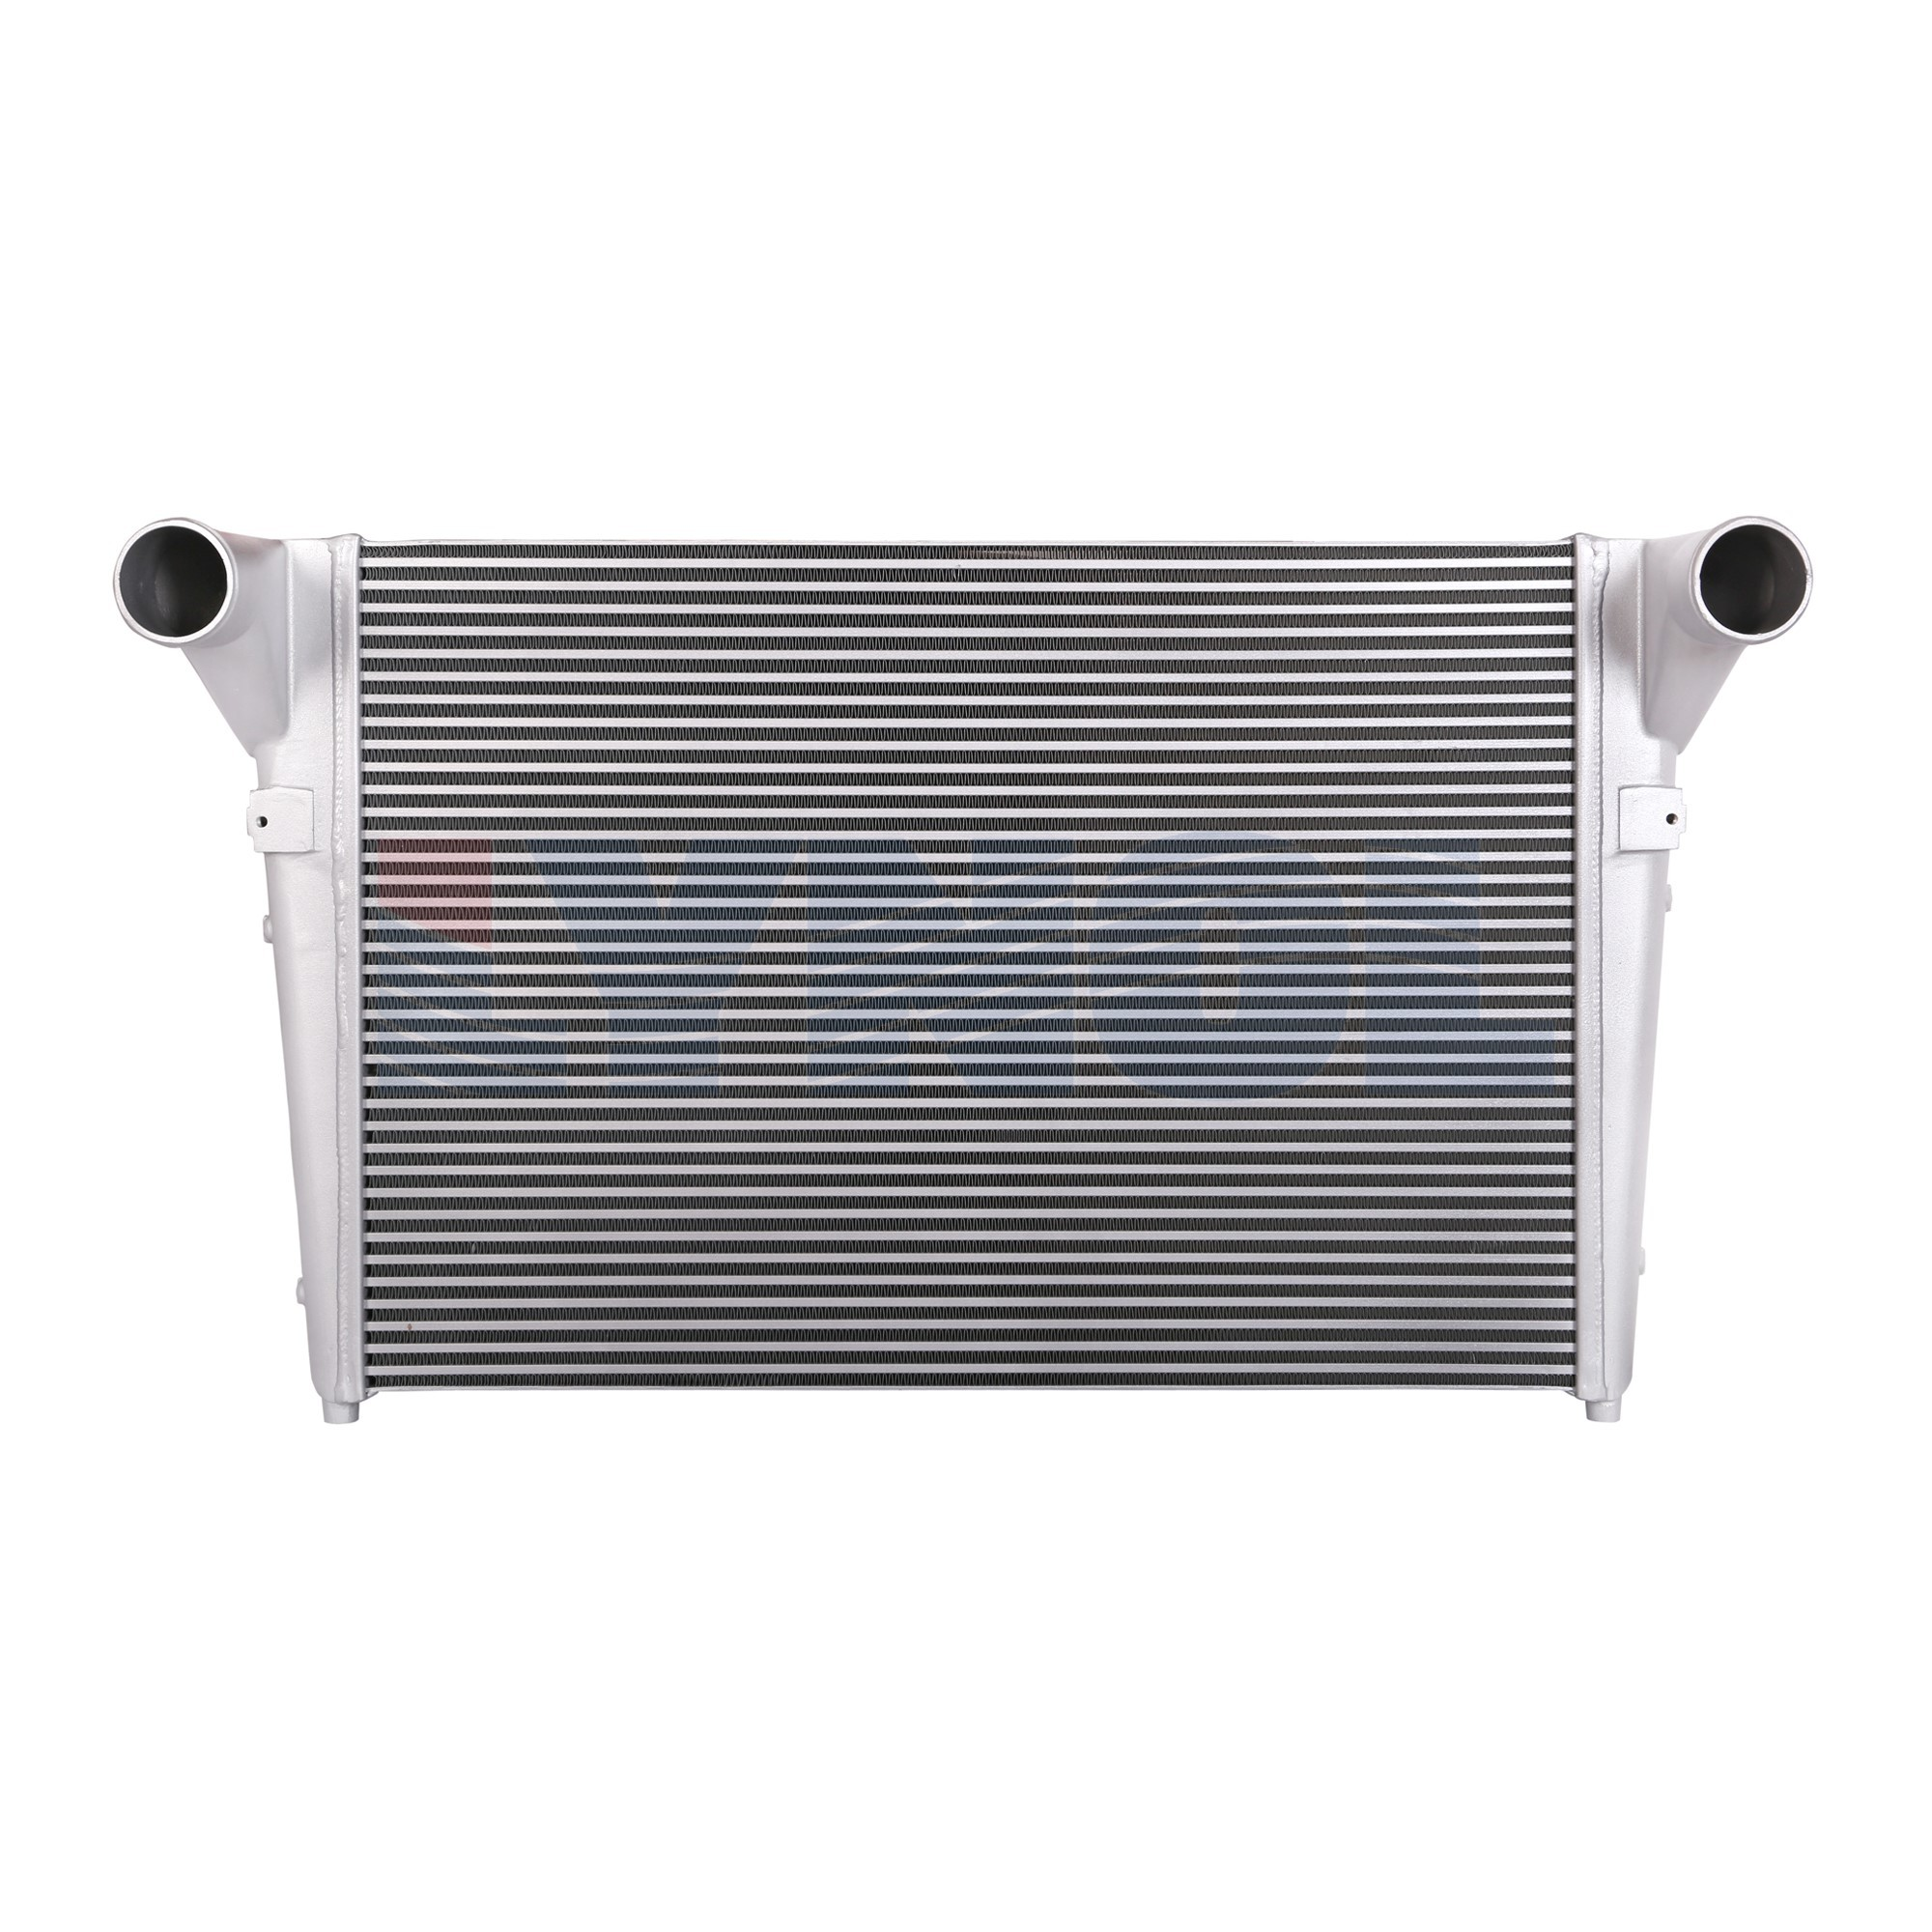 2413-009 - Mack Charge Air Cooler